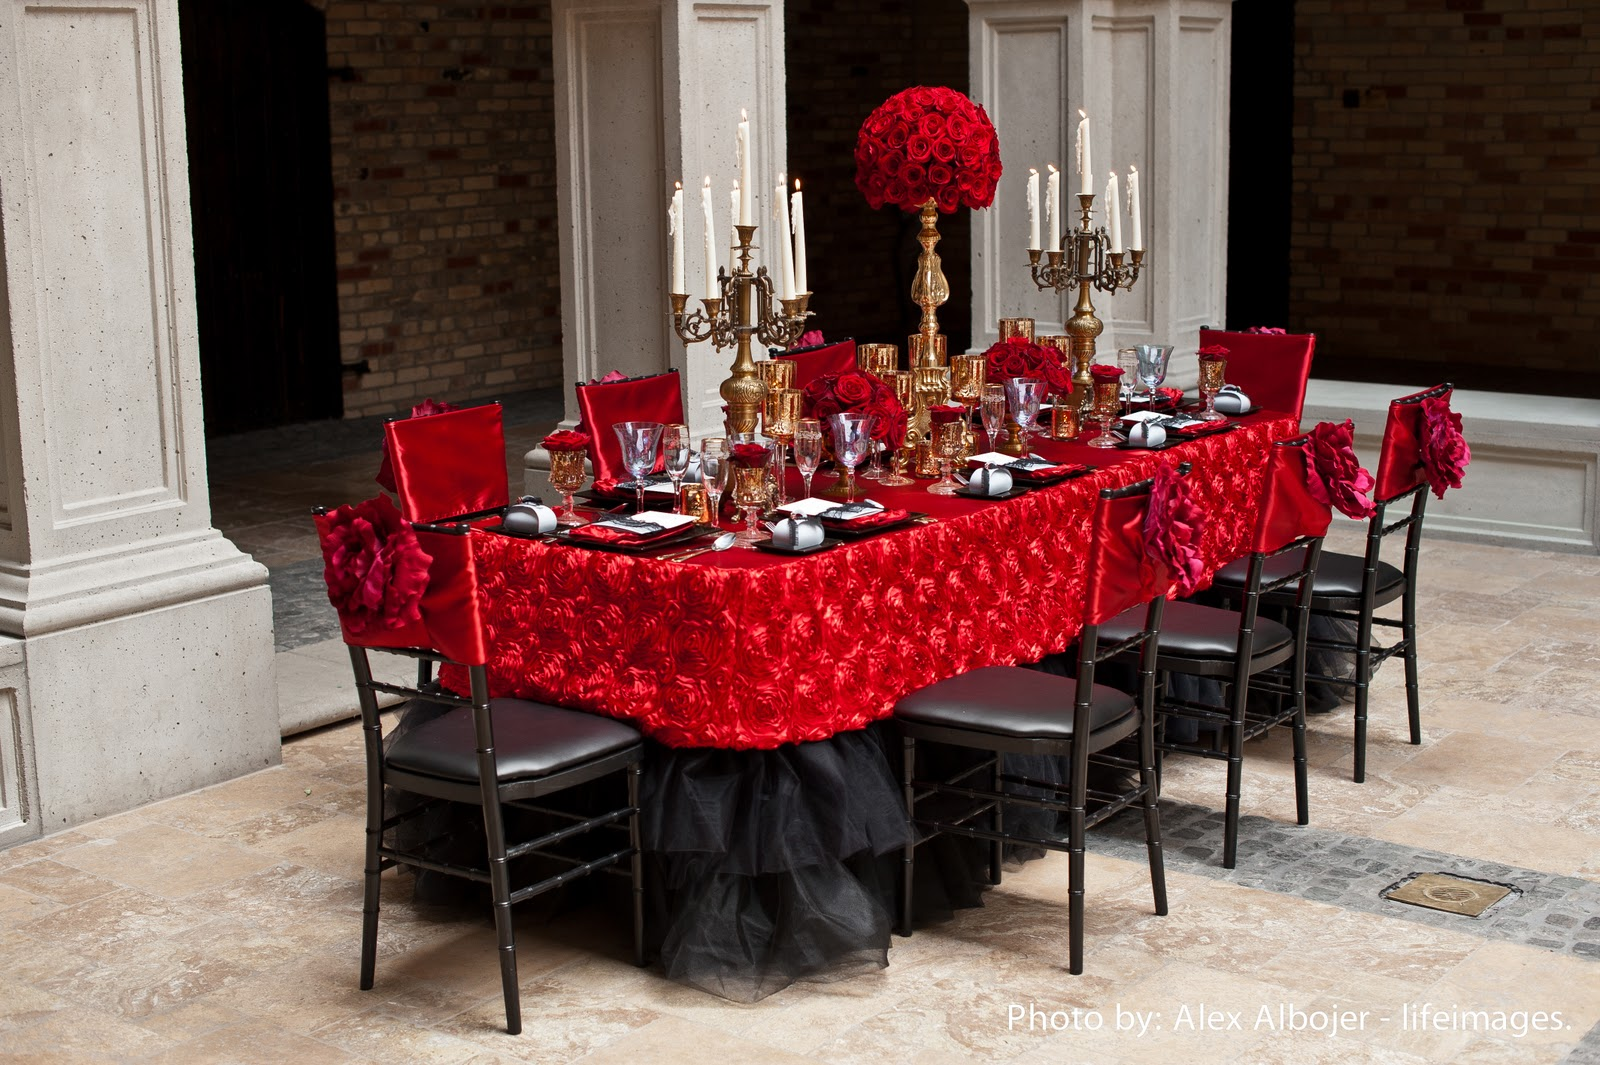 ... Calgary wedding blog: Hottest New Wedding Decor Trends for 2012